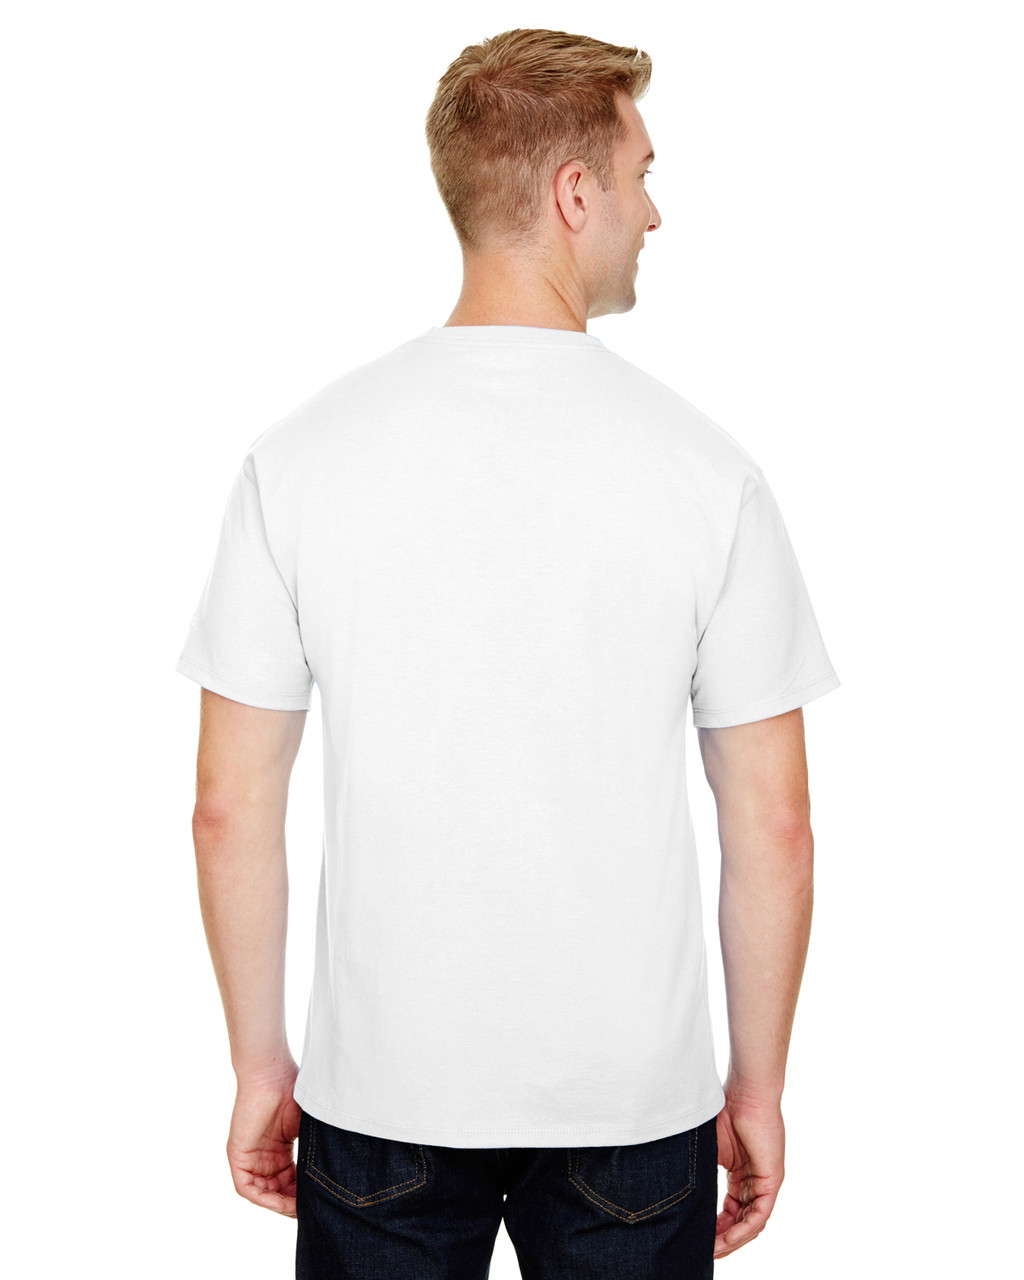 White - CP10 Champion Adult Ringspun Cotton T-Shirt | BlankClothing.ca